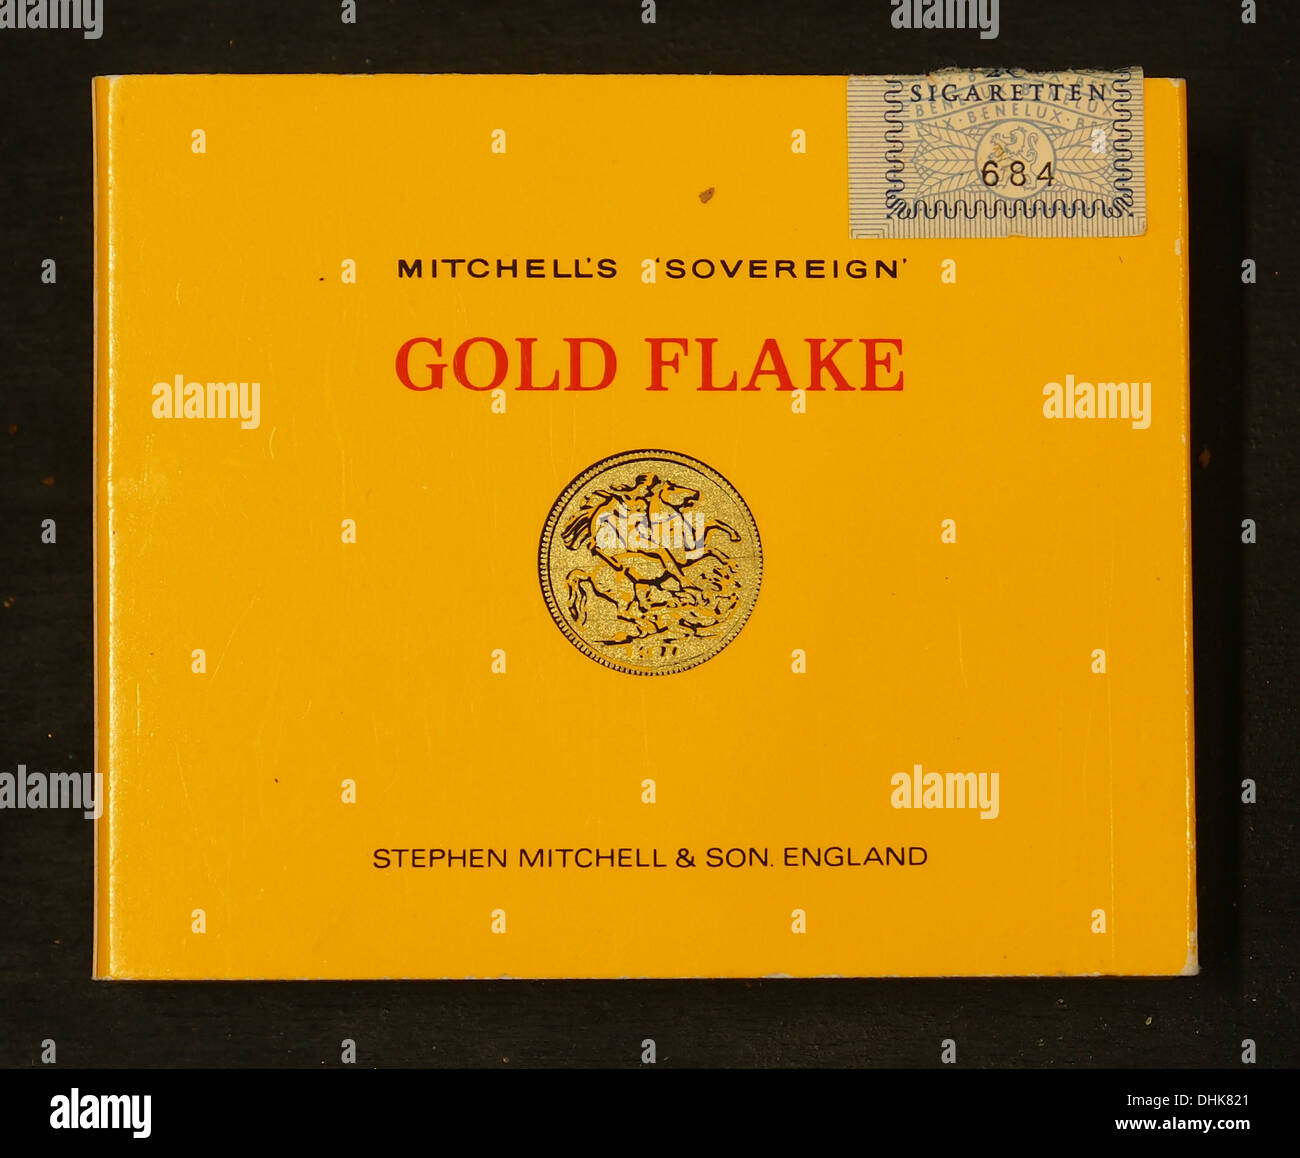 Gold Flake cigarettes, Mitchells Sovereign, backside - Stock Image